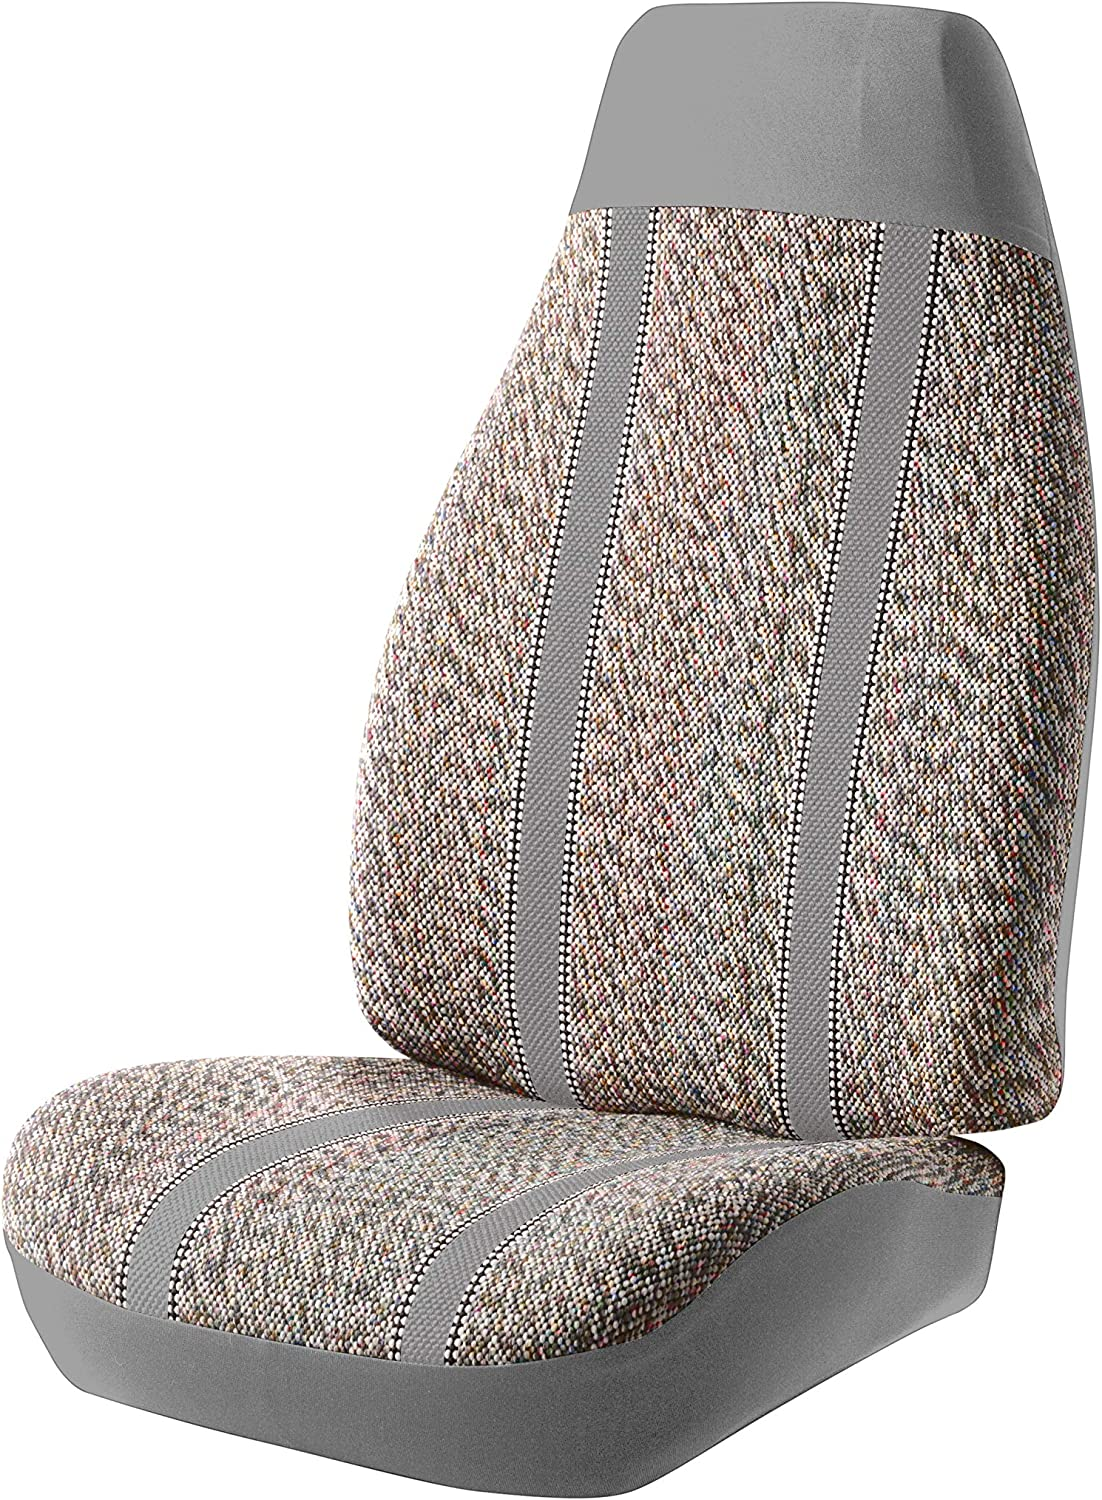 Gray Fia TR42-36 GRAY Custom Fit Rear Seat Cover Split Cushion 60//40 Saddle Blanket,